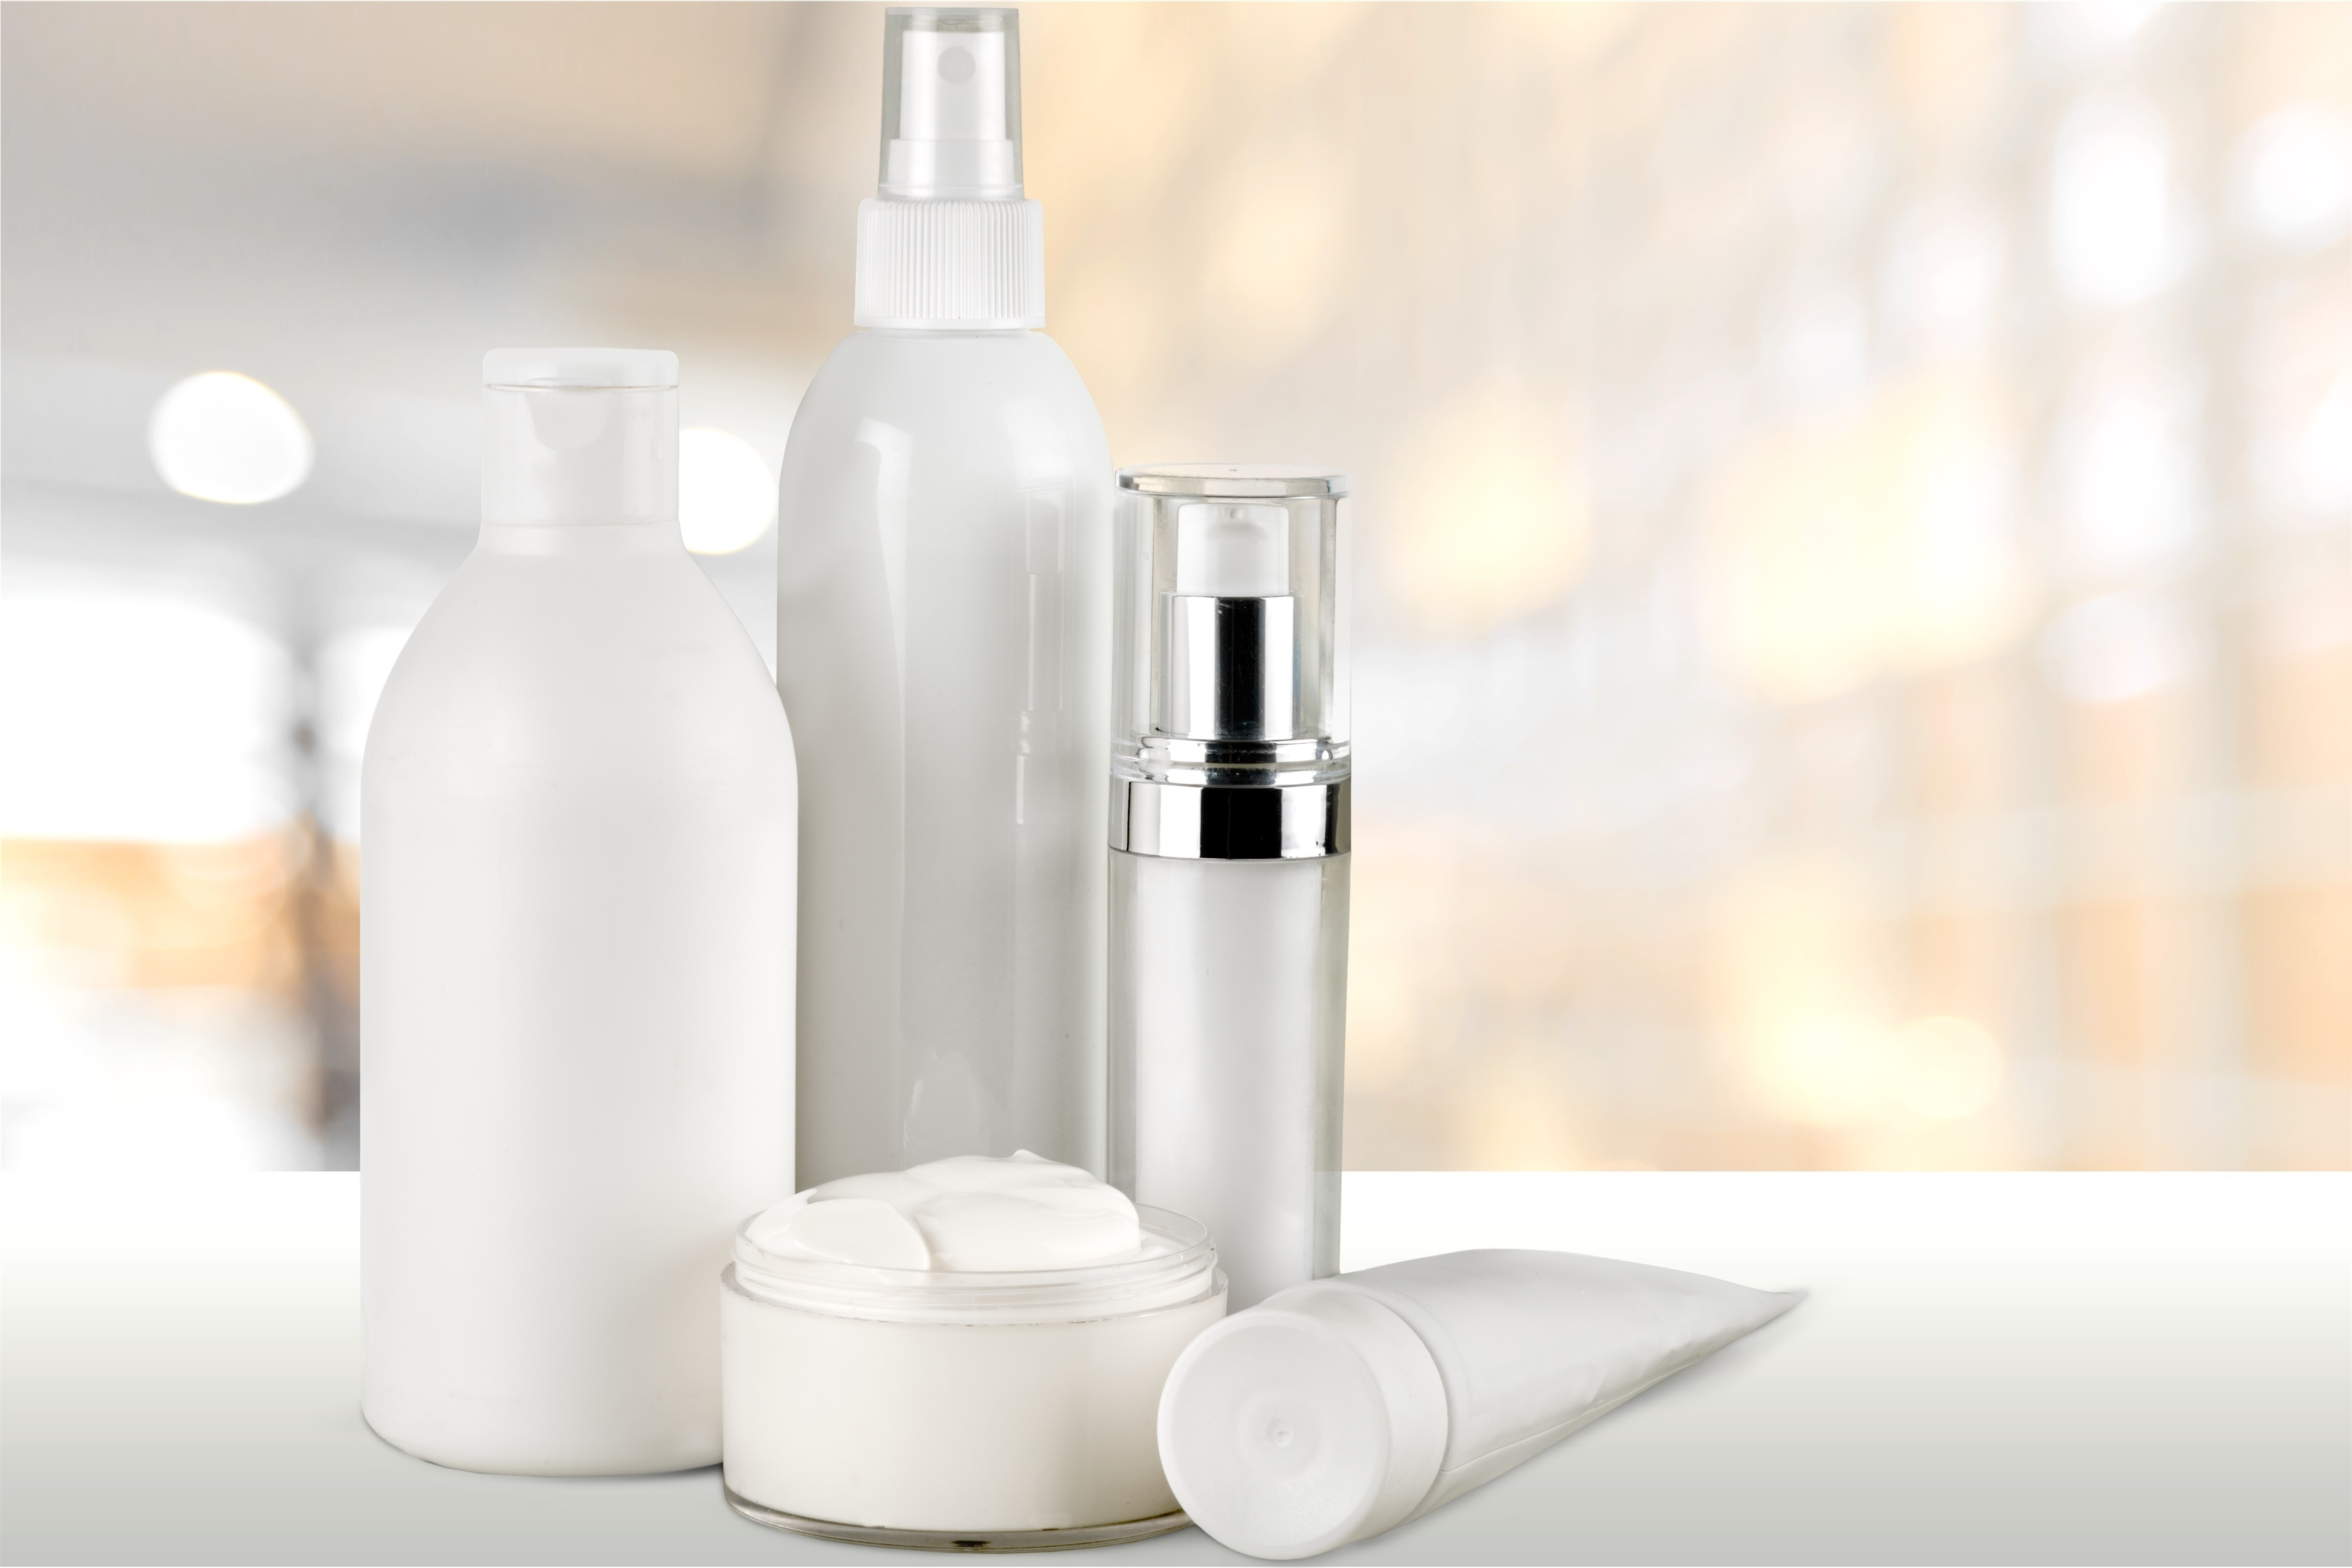 Jars or spray bottles? You choose in your MFC cosmetic formulation